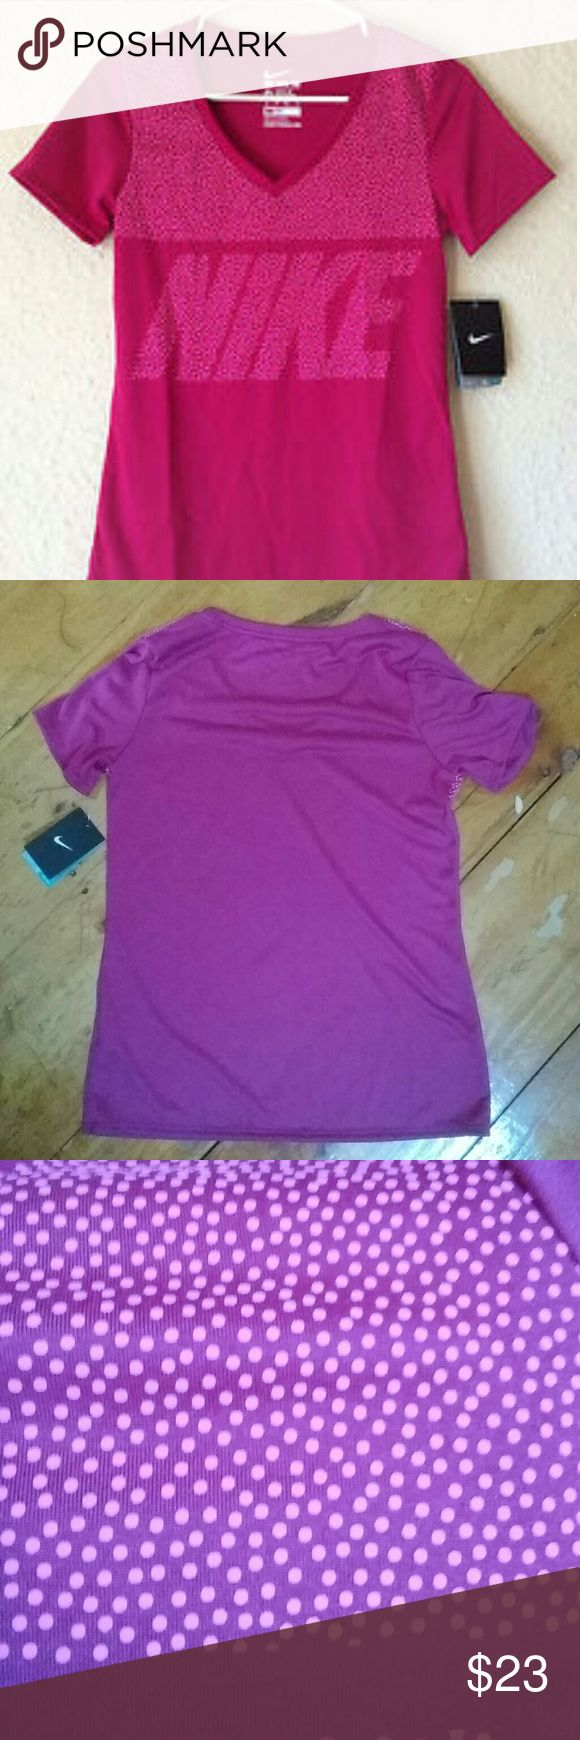 Pink polka dot Nike tshirt The first picture depicts the true color of this t-shirt the second and third picture I took so that you could see the back of the t-shirt and the polka dot detail Nike Tops Tees - Short Sleeve